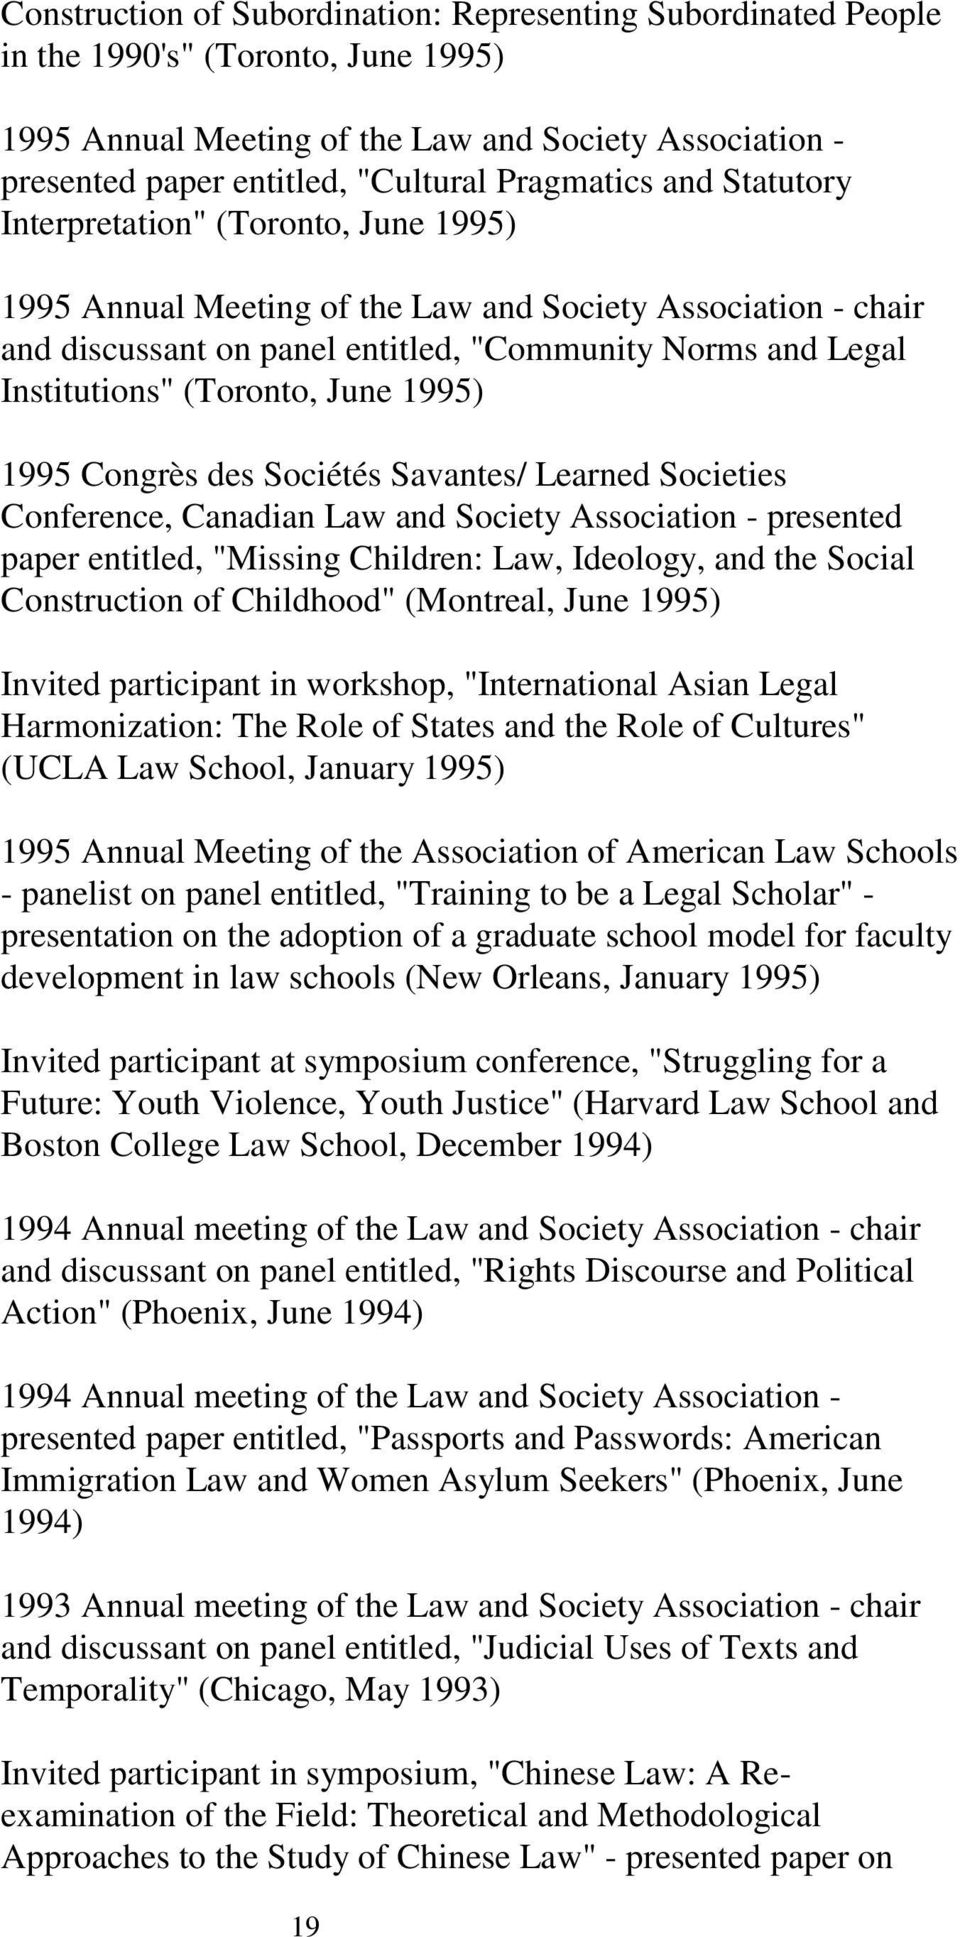 "(Toronto, June 1995) 1995 Congrès des Sociétés Savantes/ Learned Societies Conference, Canadian Law and Society Association - presented paper entitled, ""Missing Children: Law, Ideology, and the"